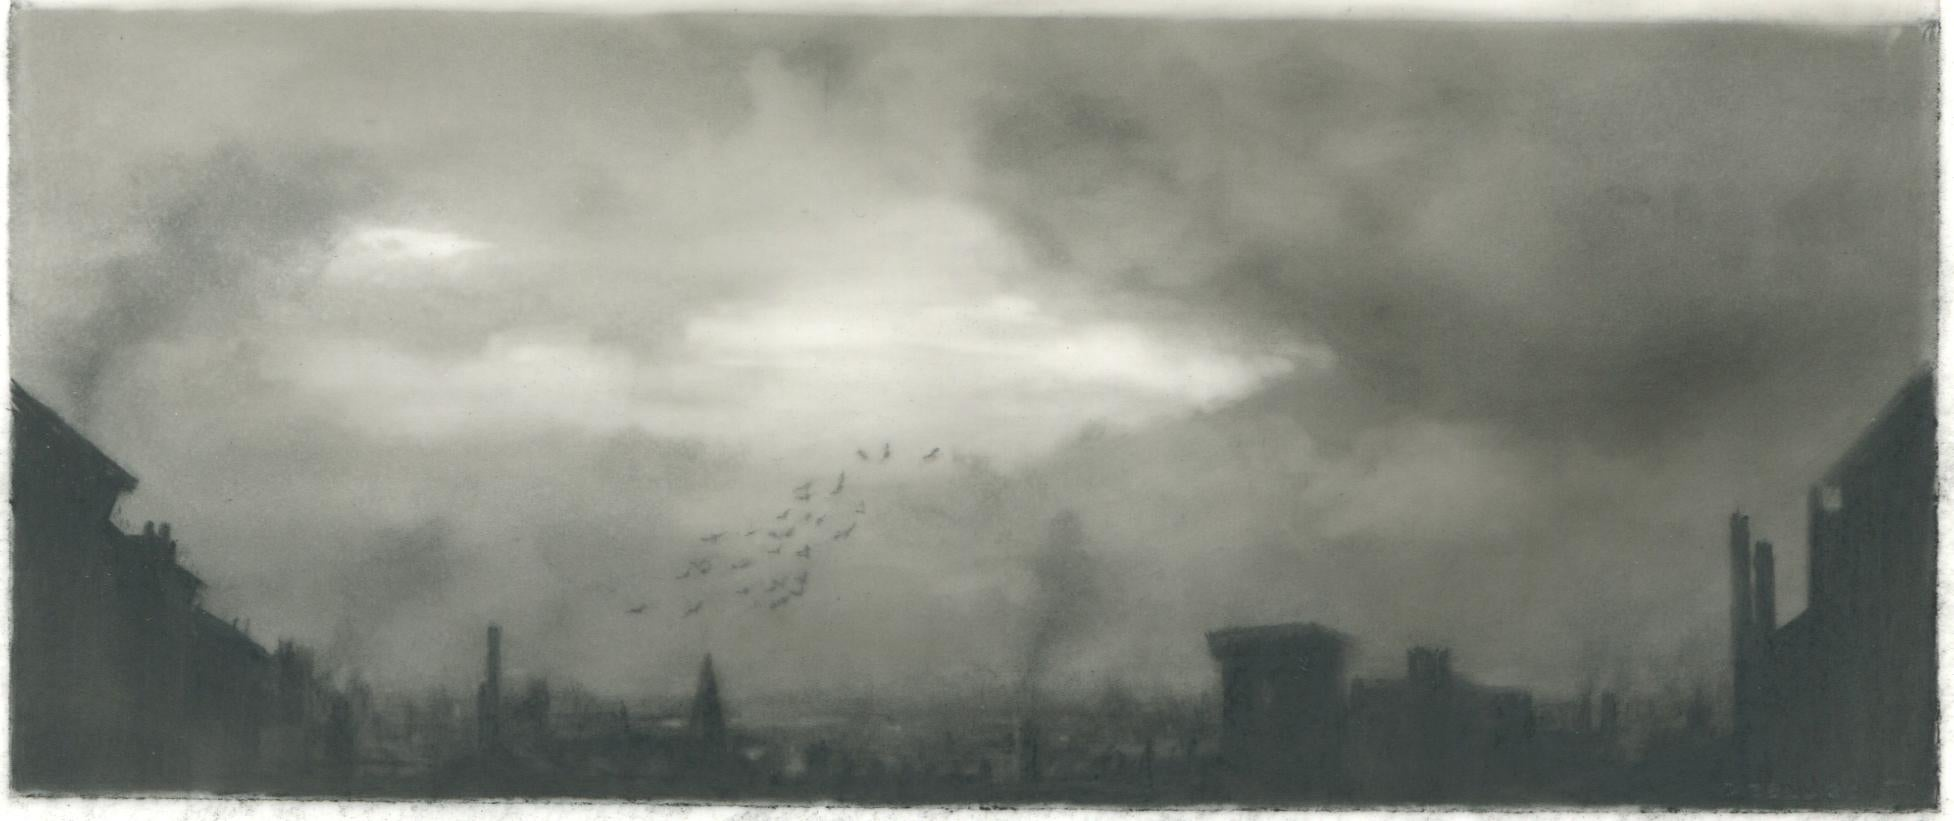 Flock, city, realist black and white charcoal skyscape drawing